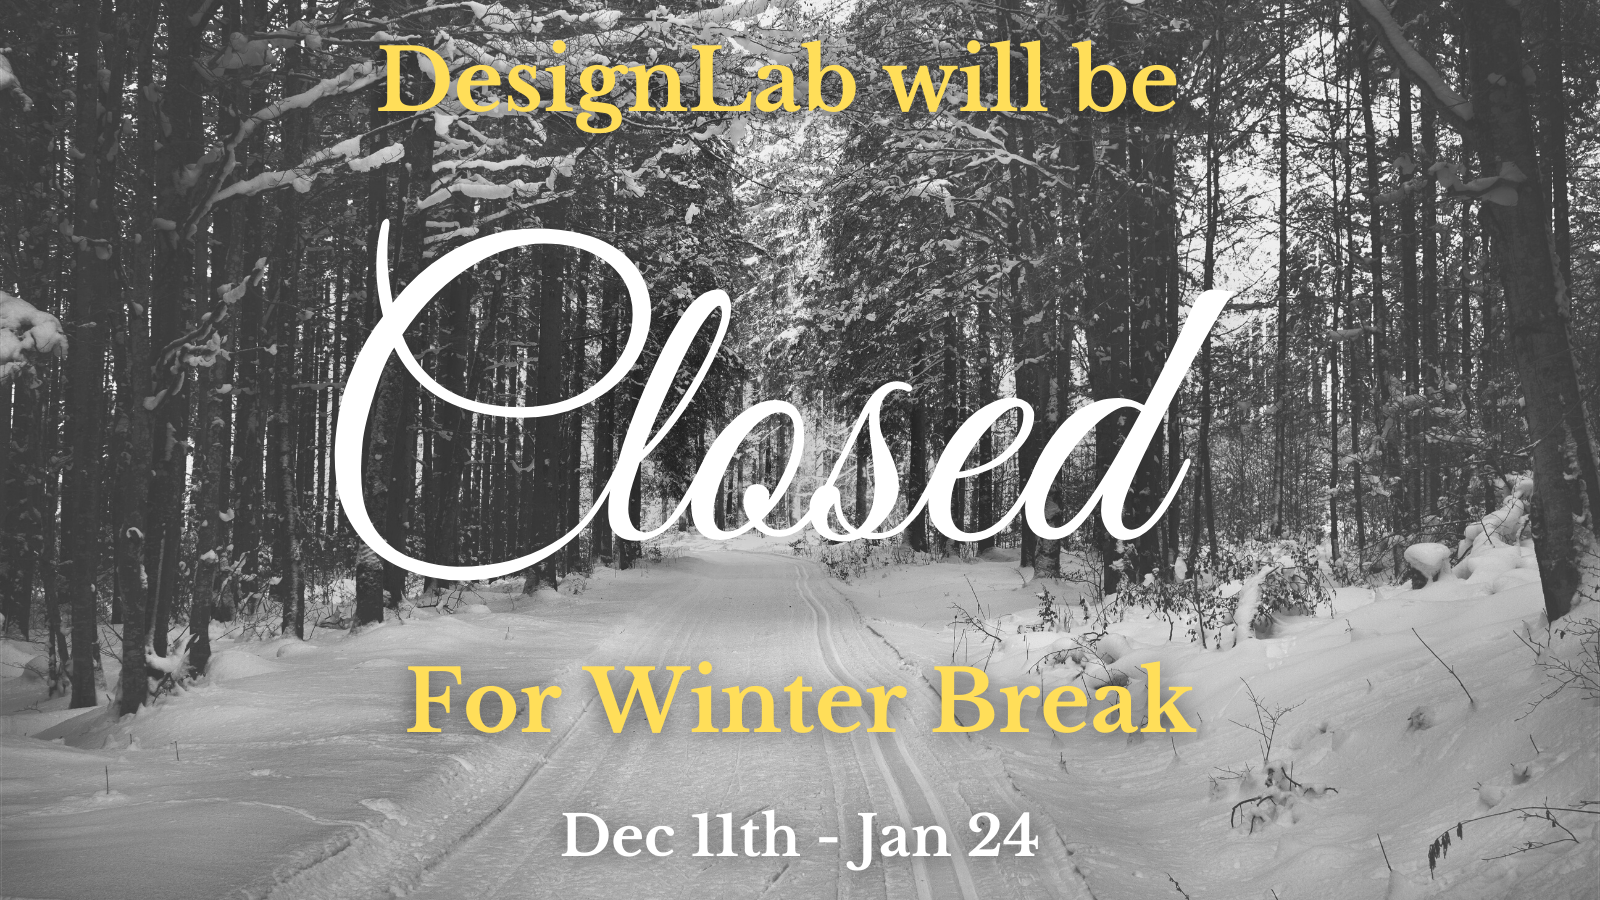 DesignLab will be closed for Winter Recess, December 11th through January 24th.